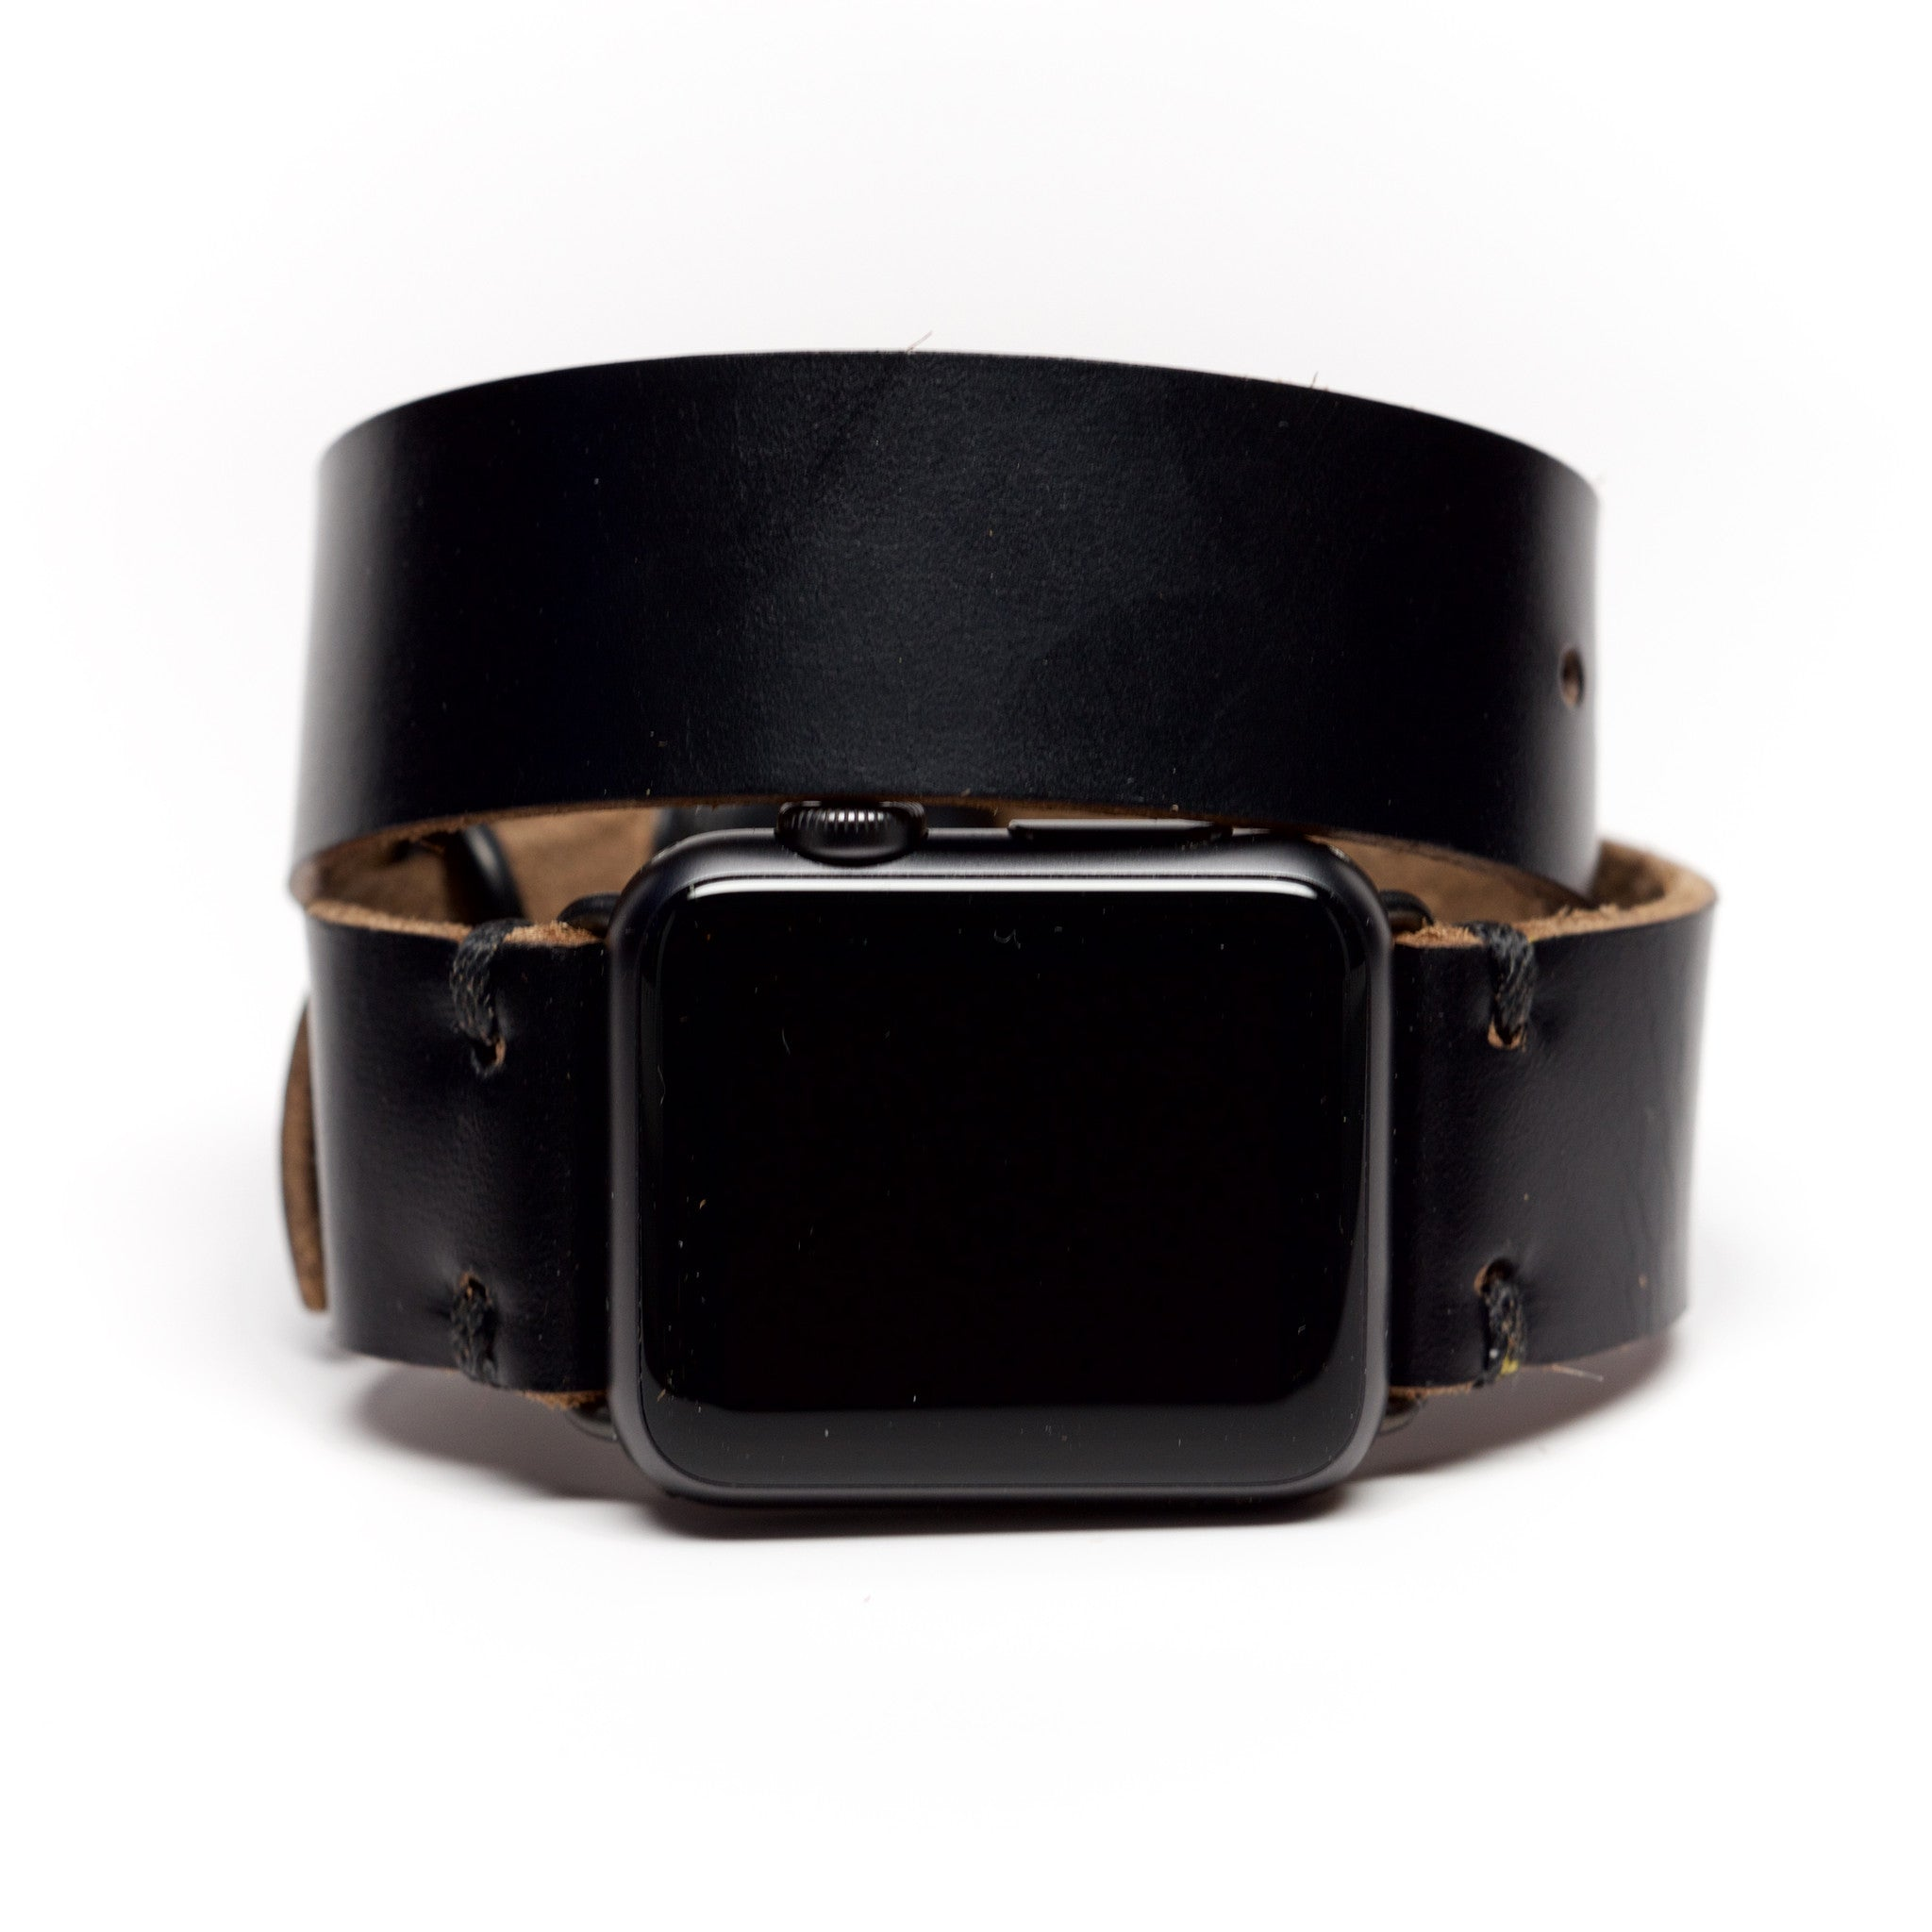 Double Wrap Apple Watch Band by E3 Supply Co. - Black Chromexcel